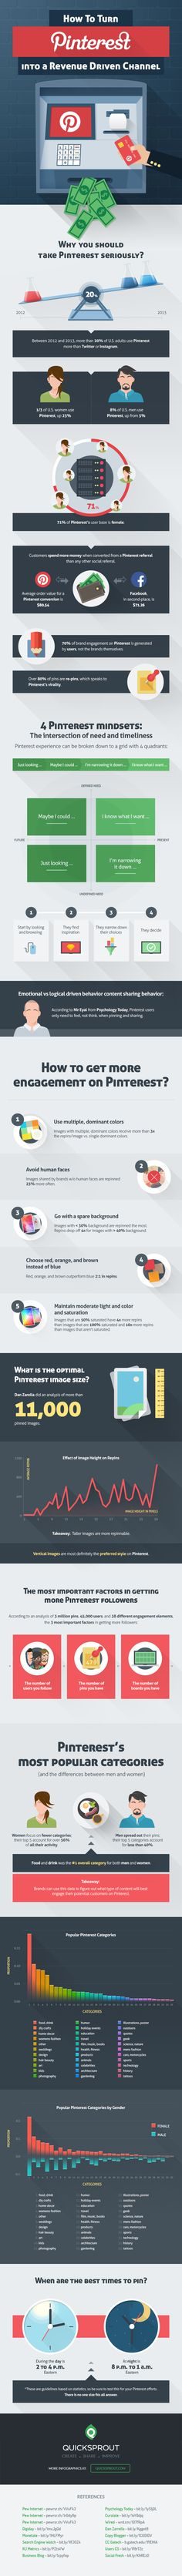 #SocialMedia Marketing: How to Turn #Pinterest Into A Revenue Generating Channel - #infographic